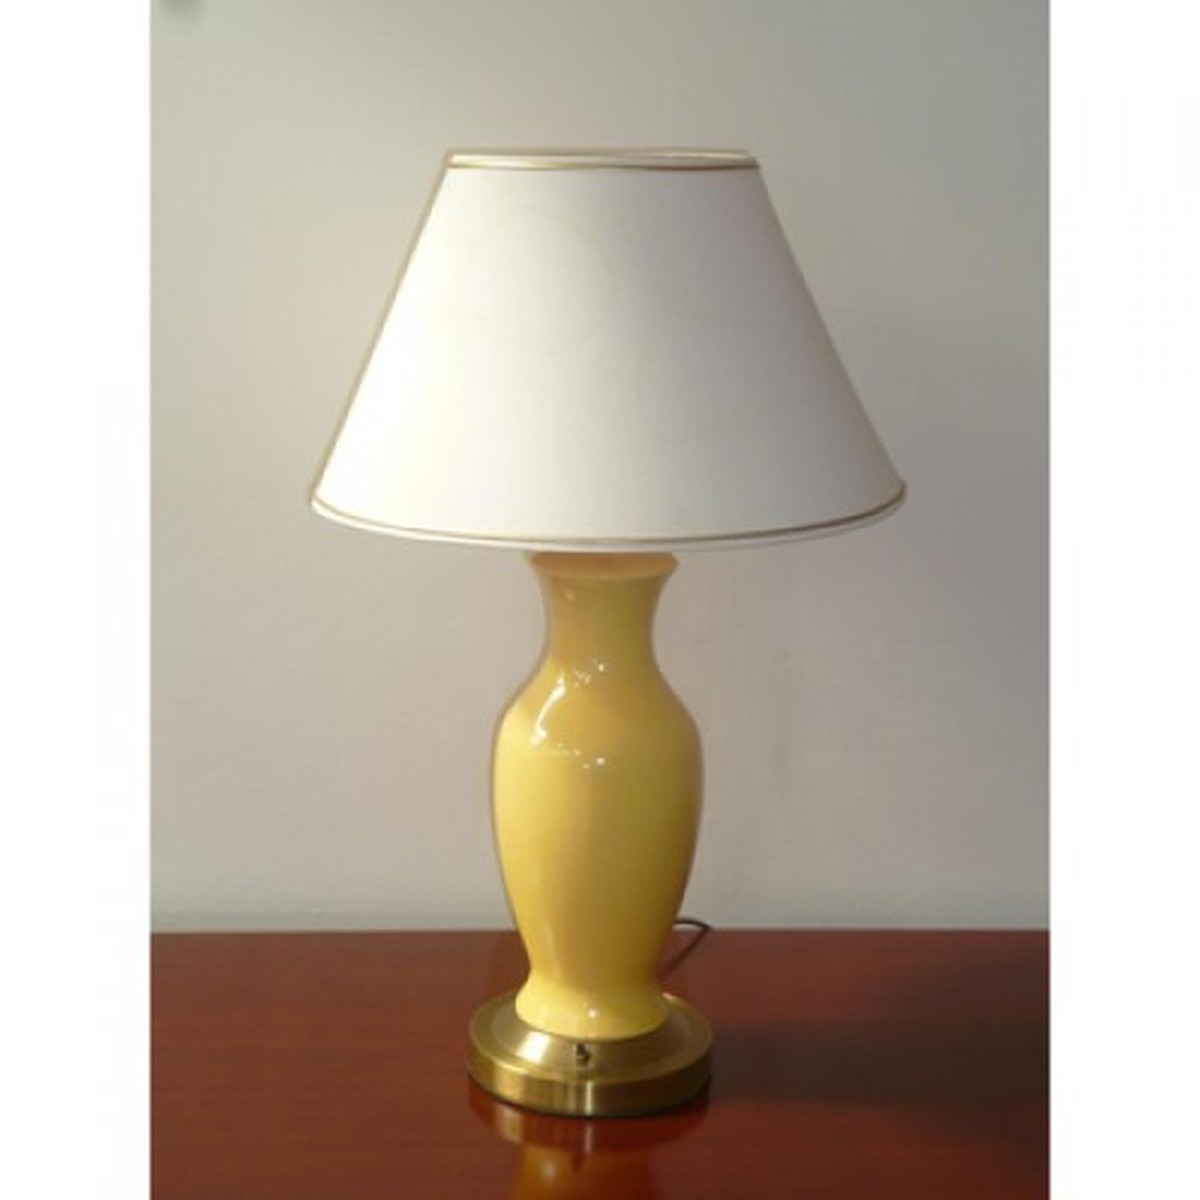 Secondhand Hotel Furniture Lighting 60x High Quality Yellow And Gilt Table Lamps